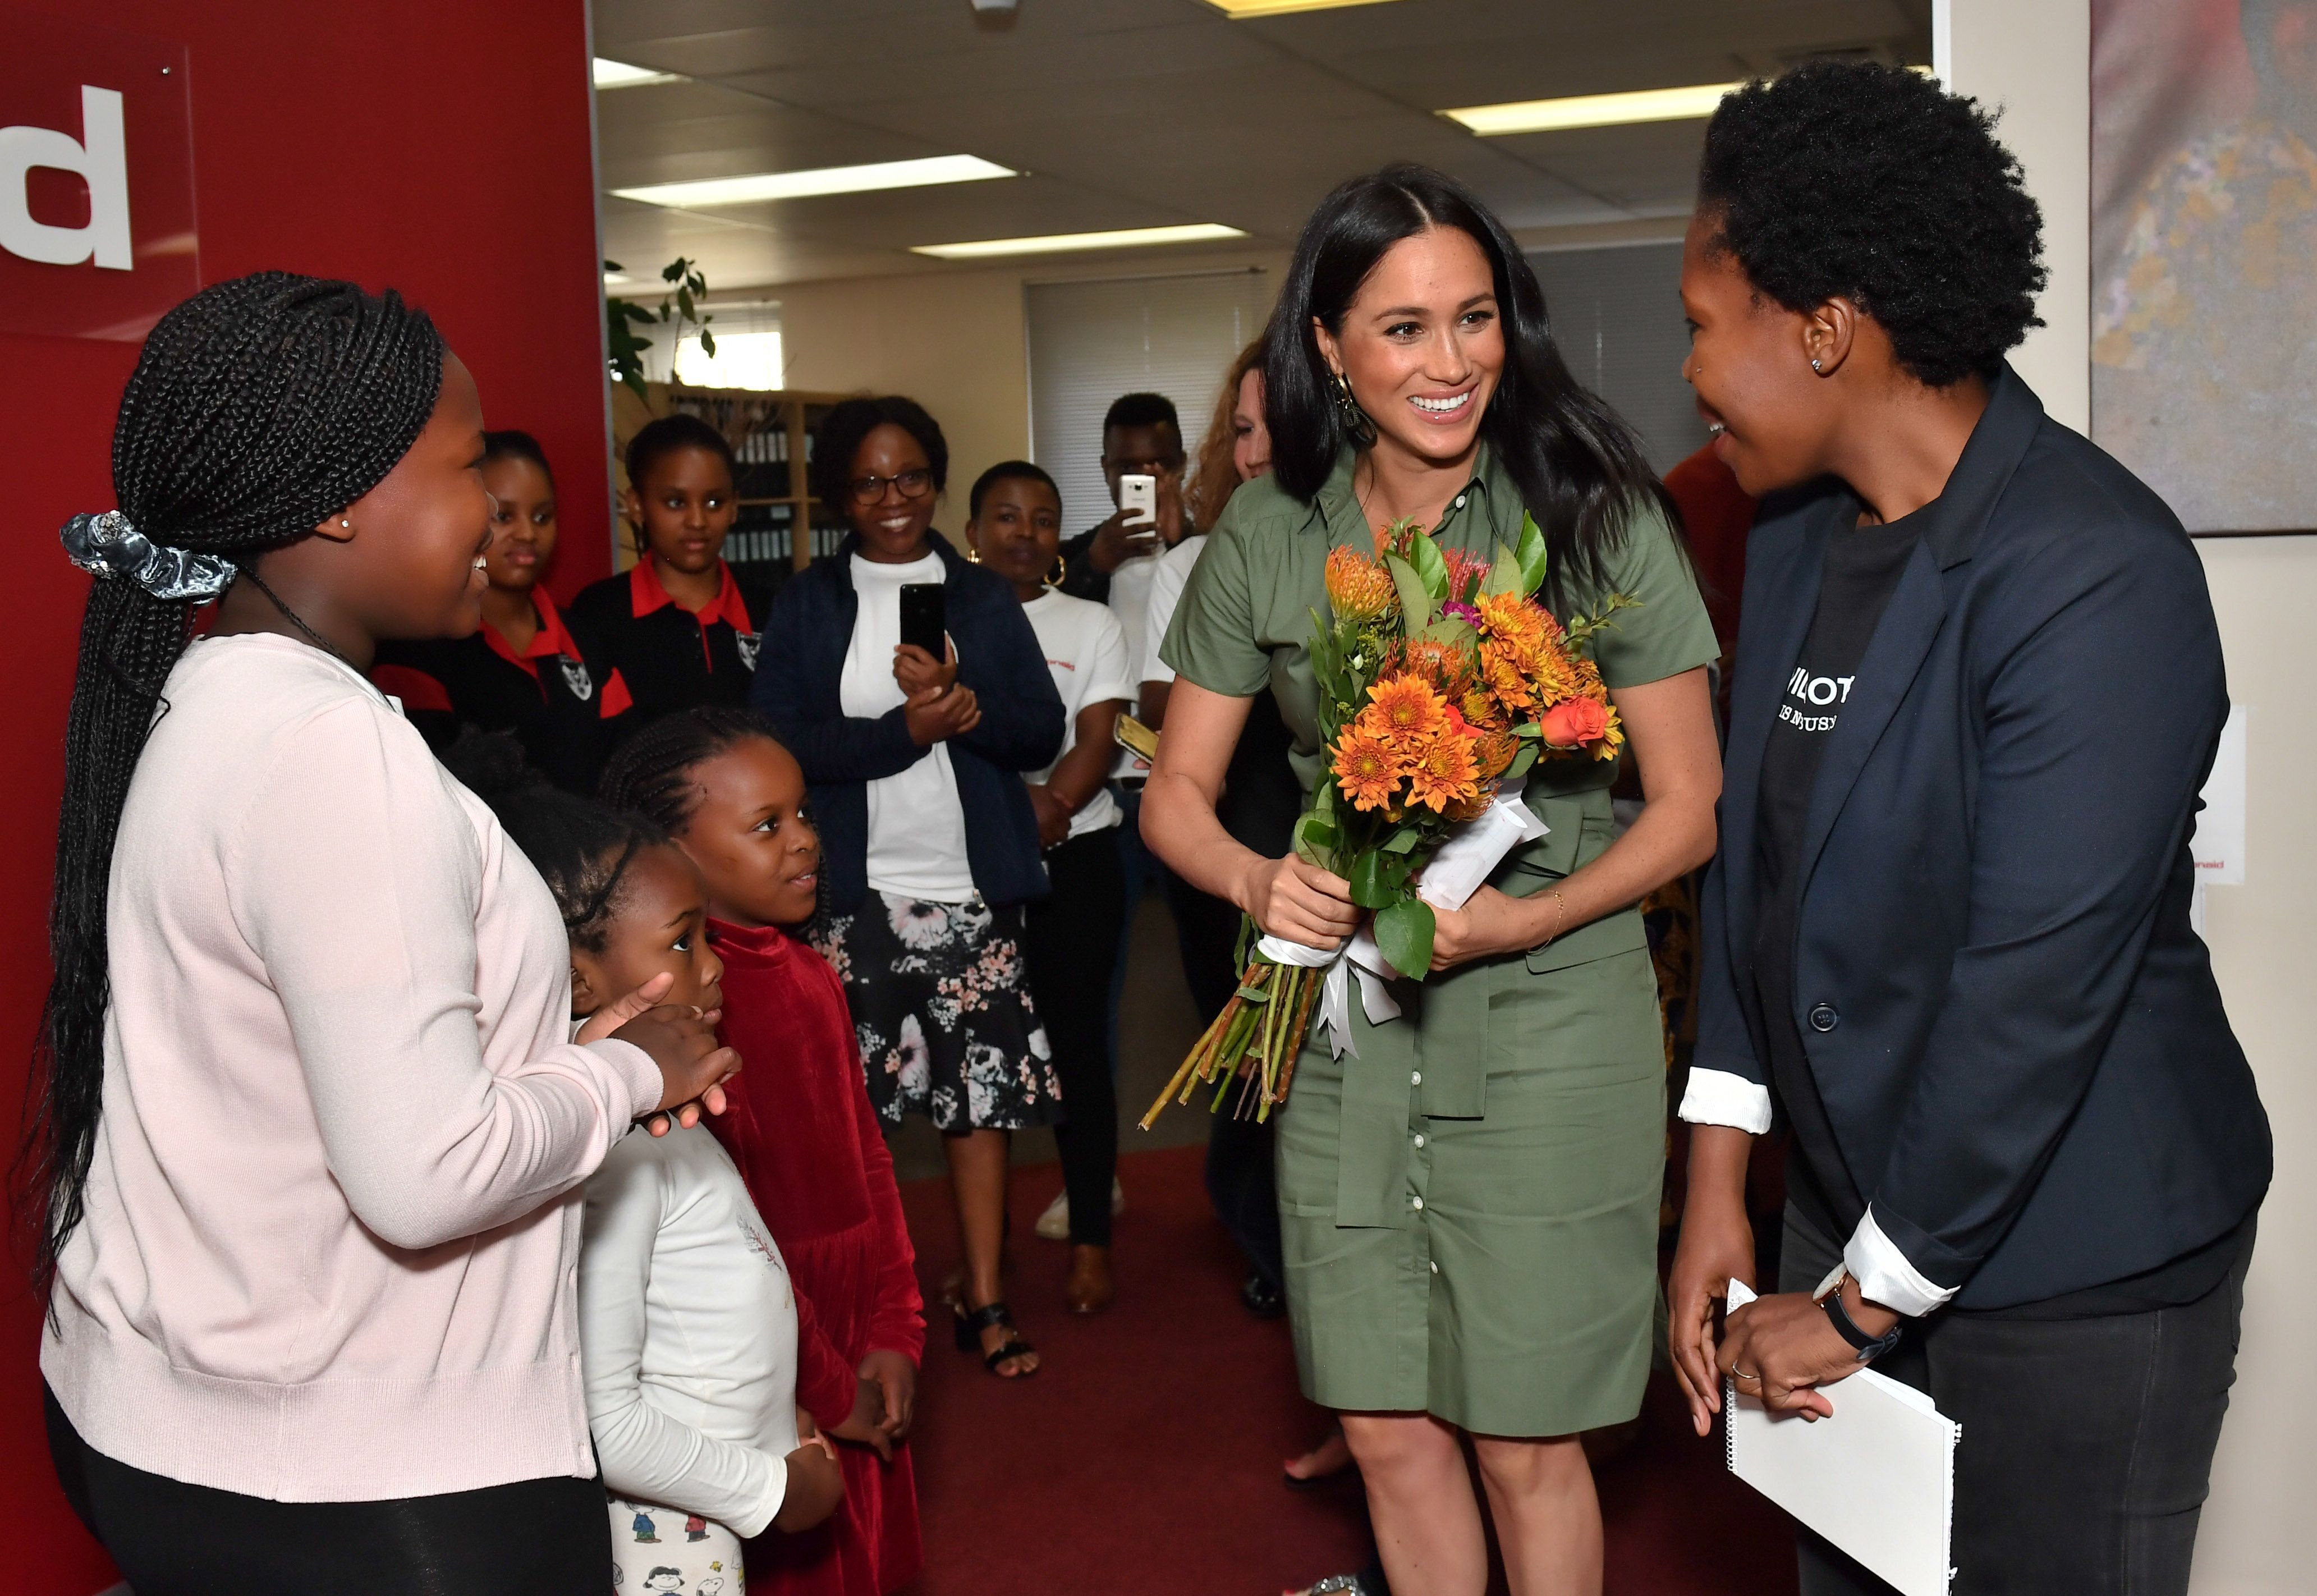 The Duchess of Sussex was presented flowers by Luyanda, age 8, during her visit to ActionAid.